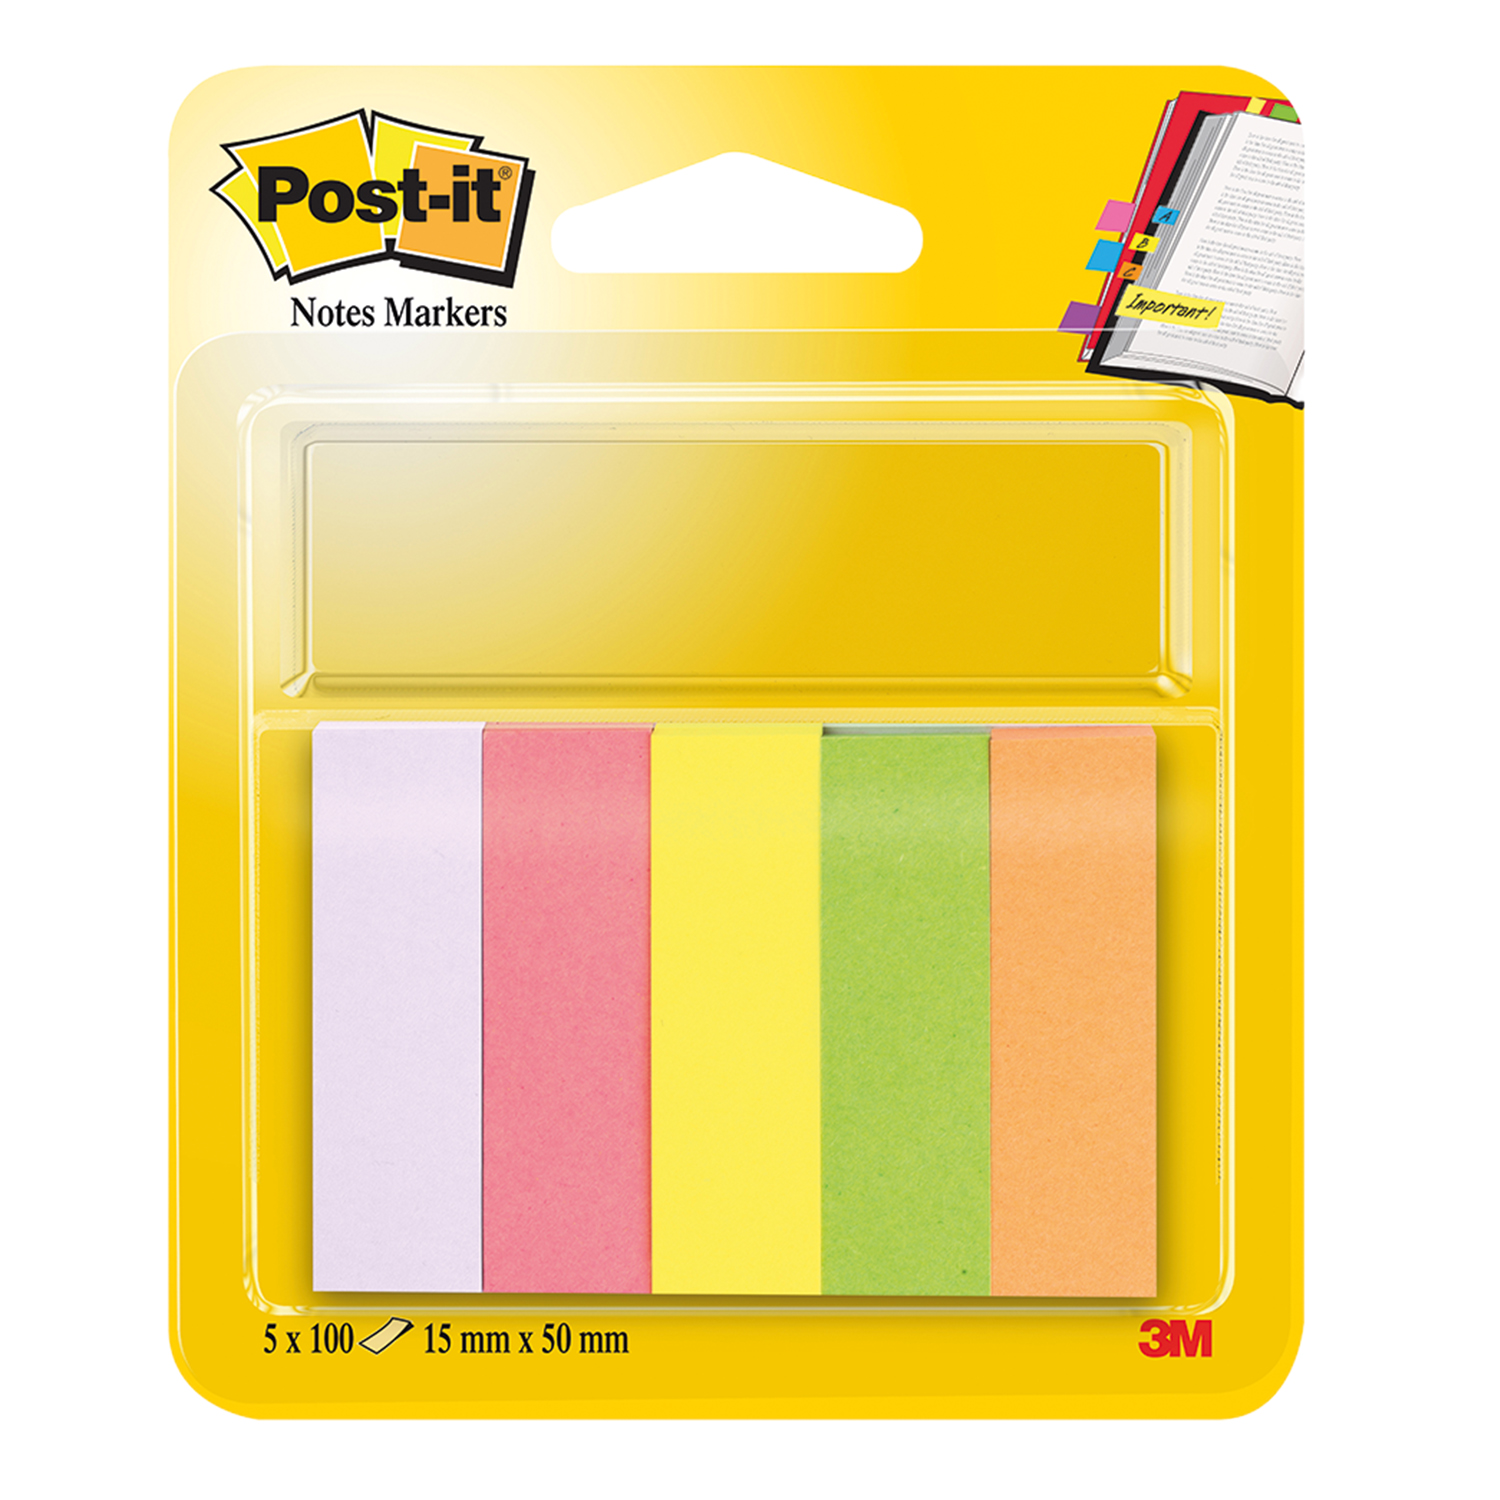 15 x 50 mm 3M Post-it Notes Page Marker neonfarben